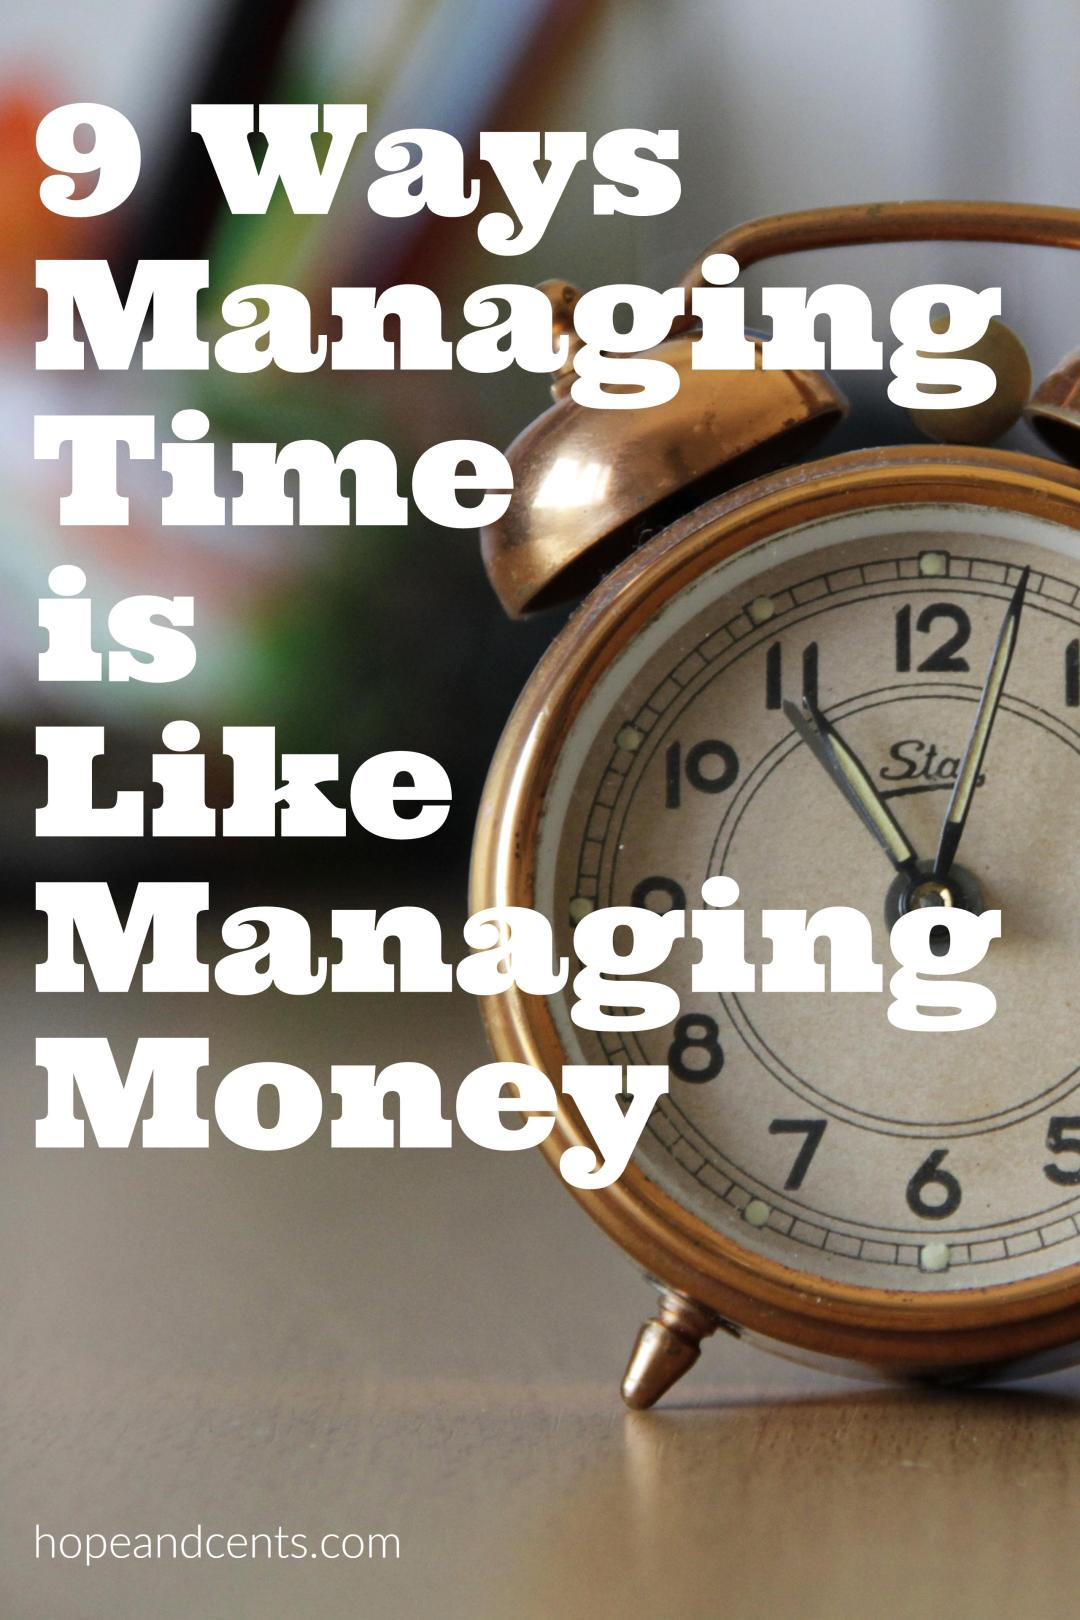 Do you struggle with time management? How about managing your money? These are nine ways managing time is like managing money.